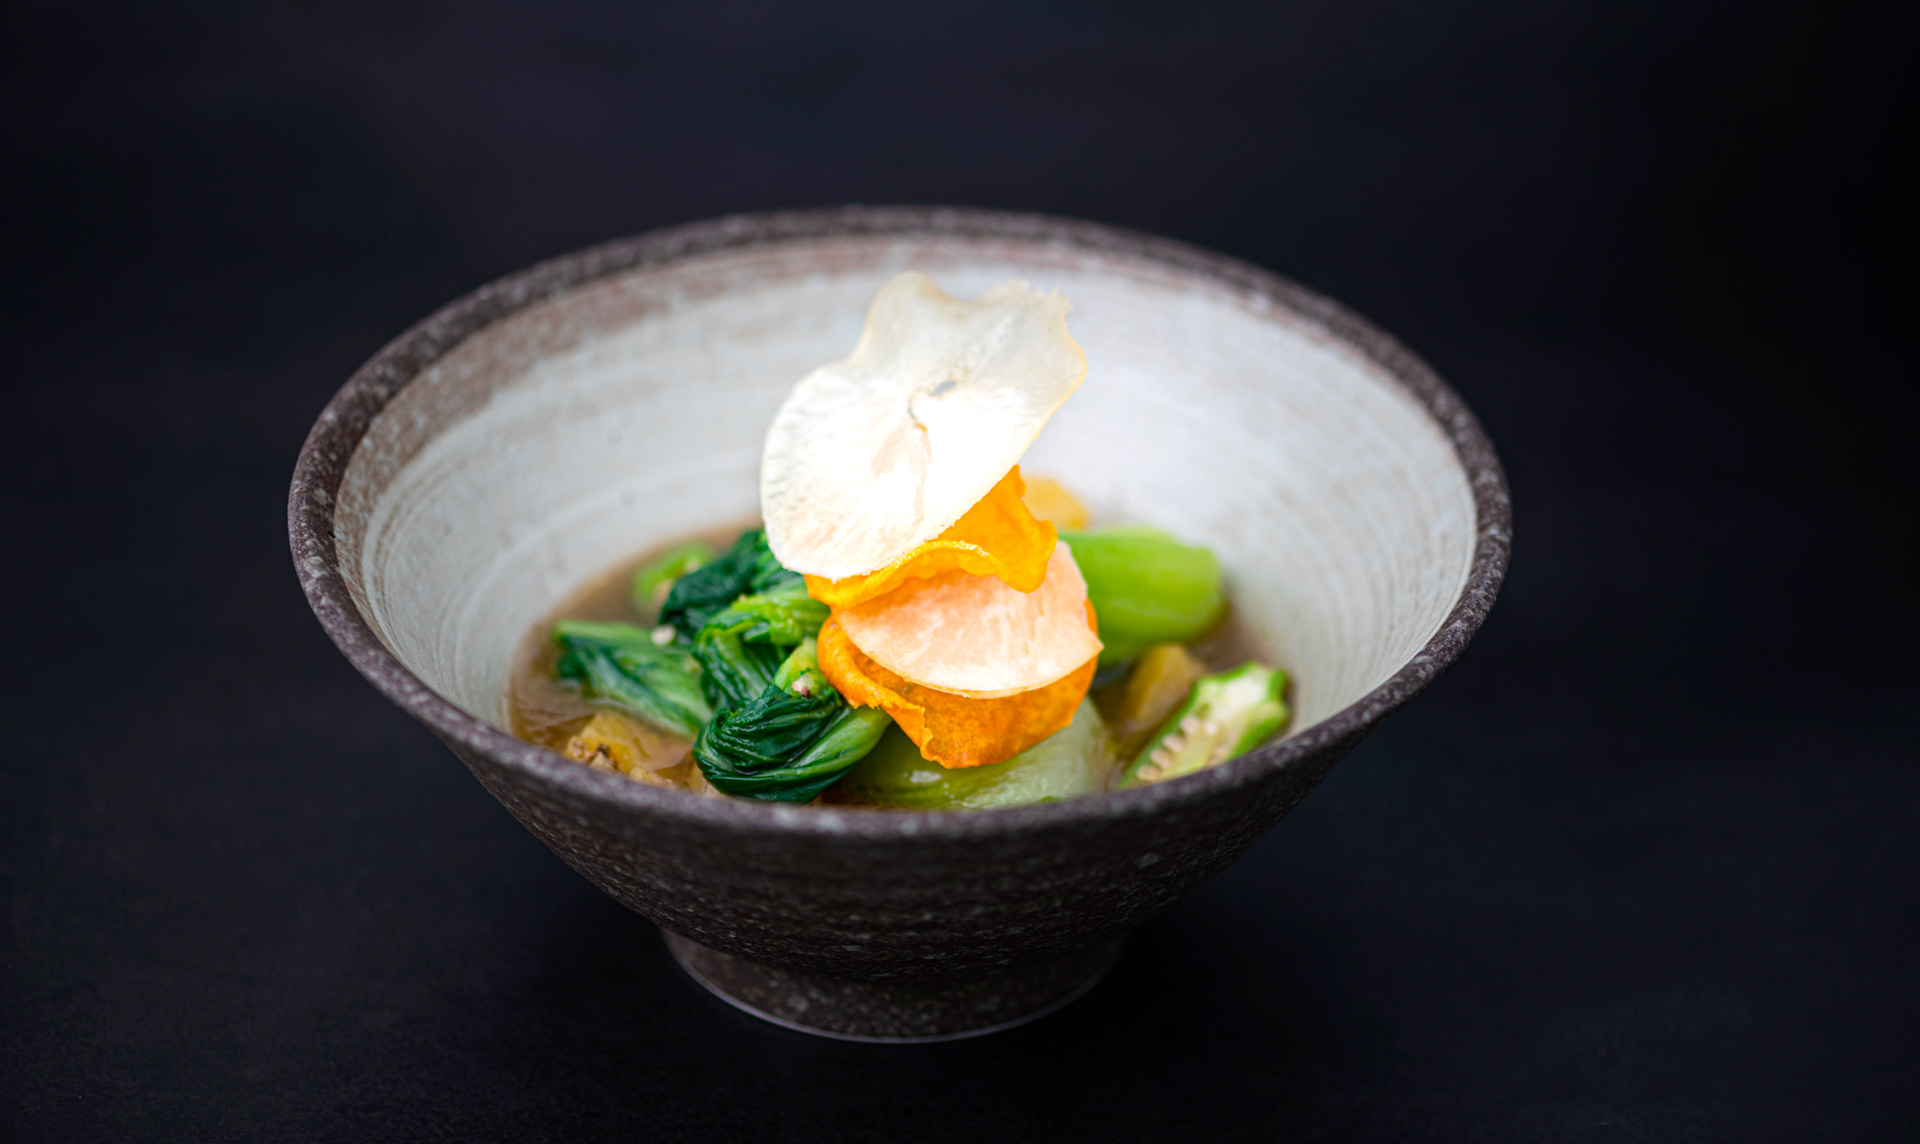 Vegan bok choy broth recipe inspired by African cuisine from Yasomo by Chef Mick Élysée